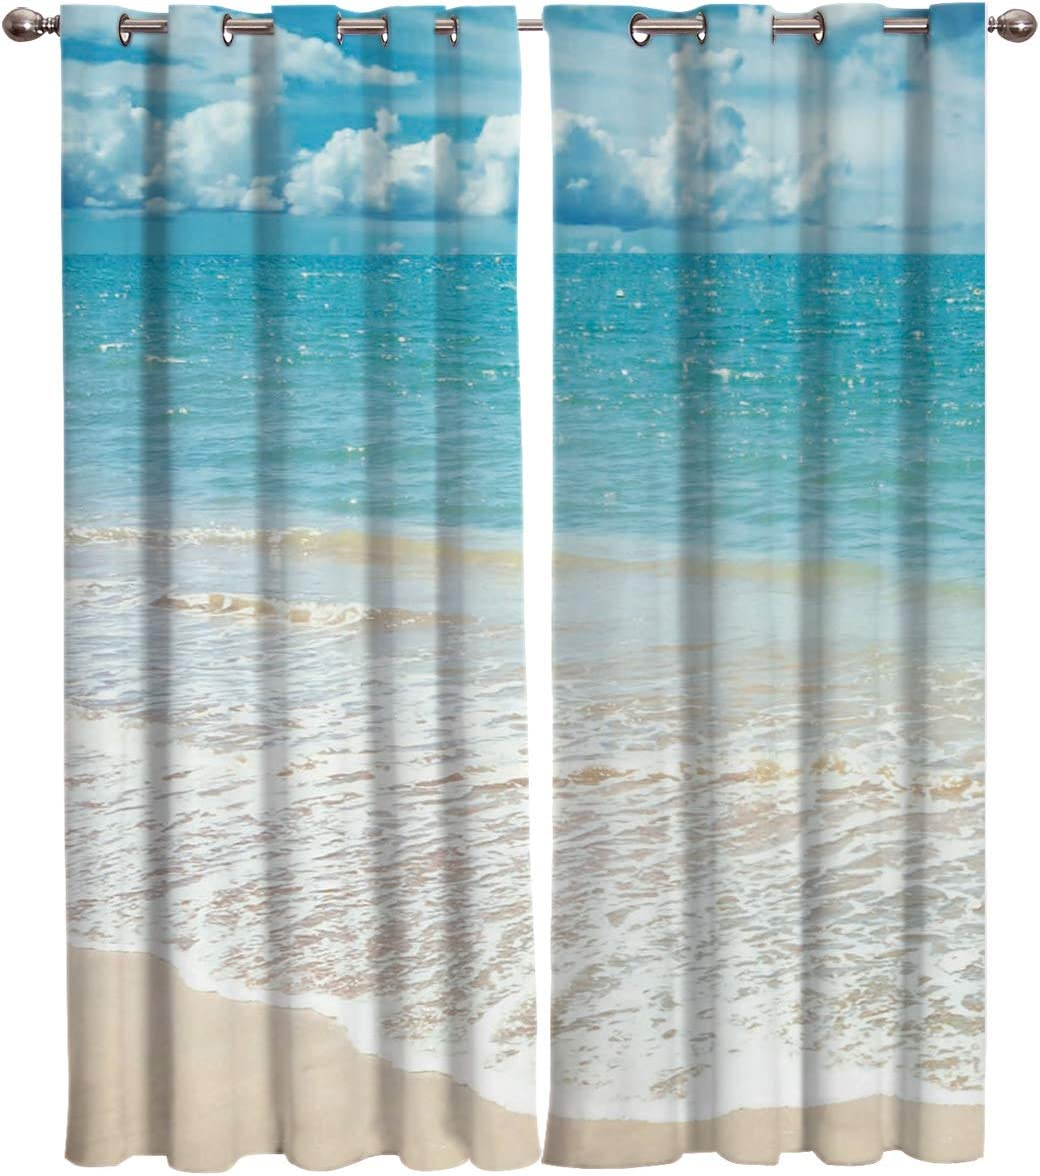 T H Home Tropical Curtains Exotic Beach With Vivid Sky Ocean Island Scenery Window Curtain 2 Panel Curtains For Sliding Glass Door Bedroom Living Room 104 W By 96 L Home